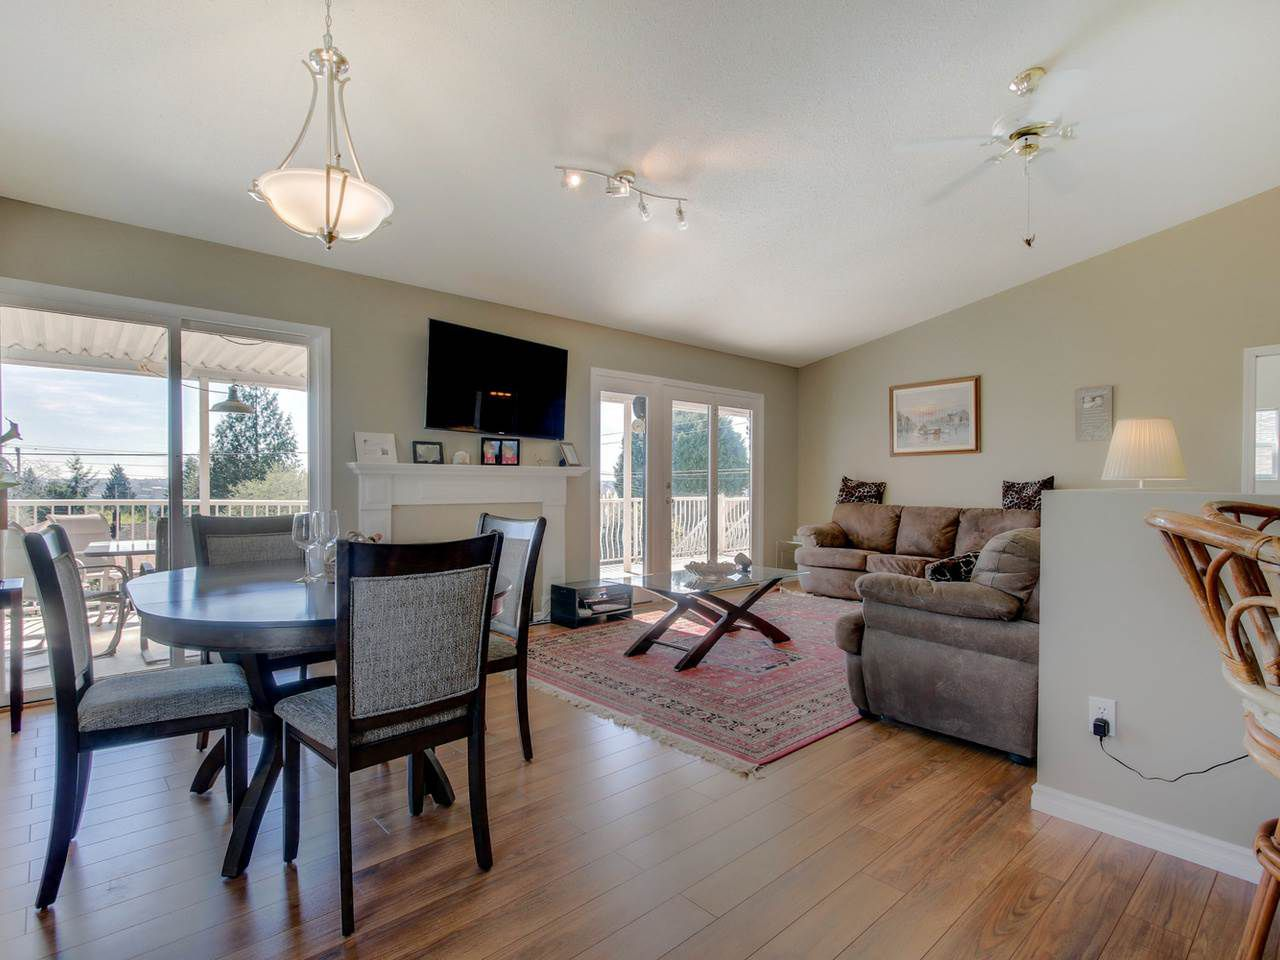 Photo 7: Photos: 449 E 5TH Street in North Vancouver: Lower Lonsdale House for sale : MLS®# R2056647